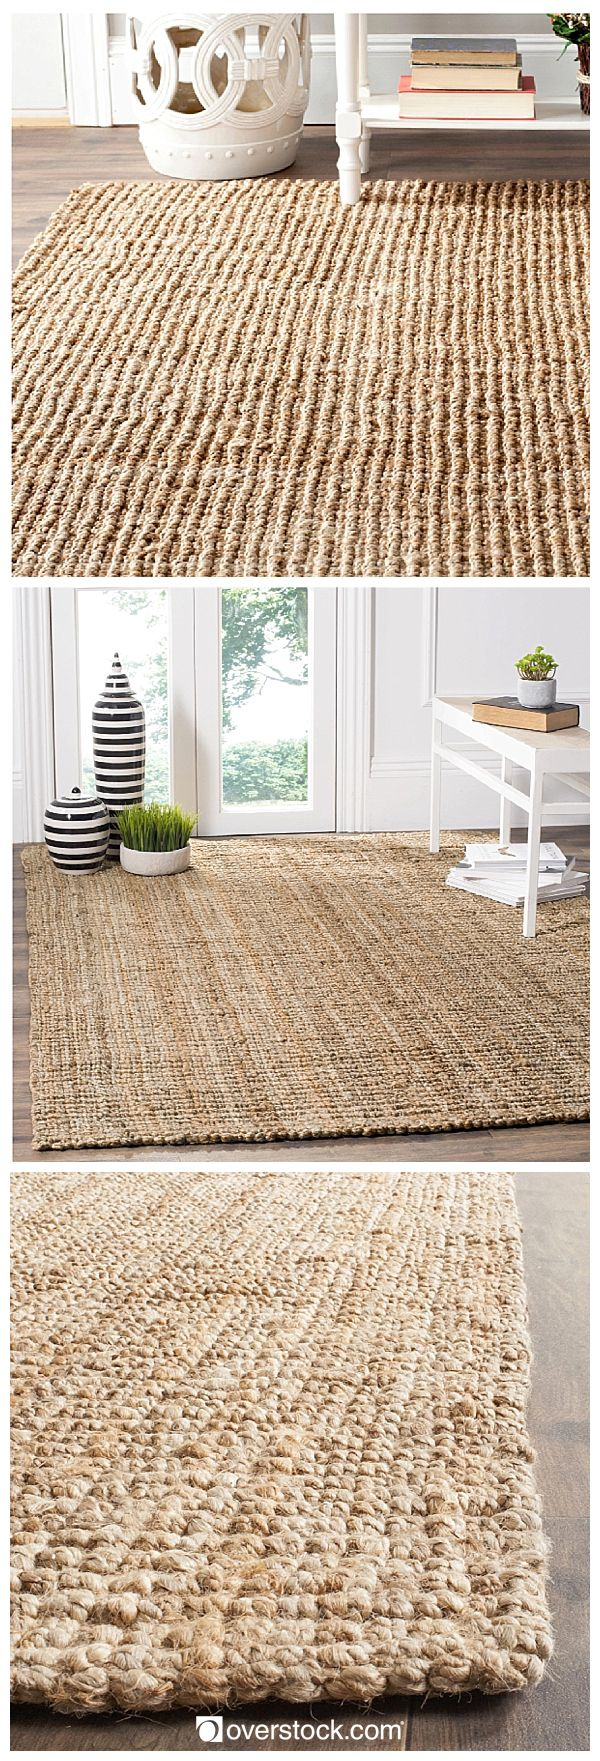 This rug works well in low- to medium-traffic areas of the home, such as the office, living room, or under a coffee table for a clean and sleek aesthetic. Its casual nautical feel is evocative of a coastal living environment, yet its limitless versatility allows it to assimilate effortlessly into an urban setting. Safavieh's natural fiber rugs will give any living space an impeccably relaxed look with a dash of fashion.